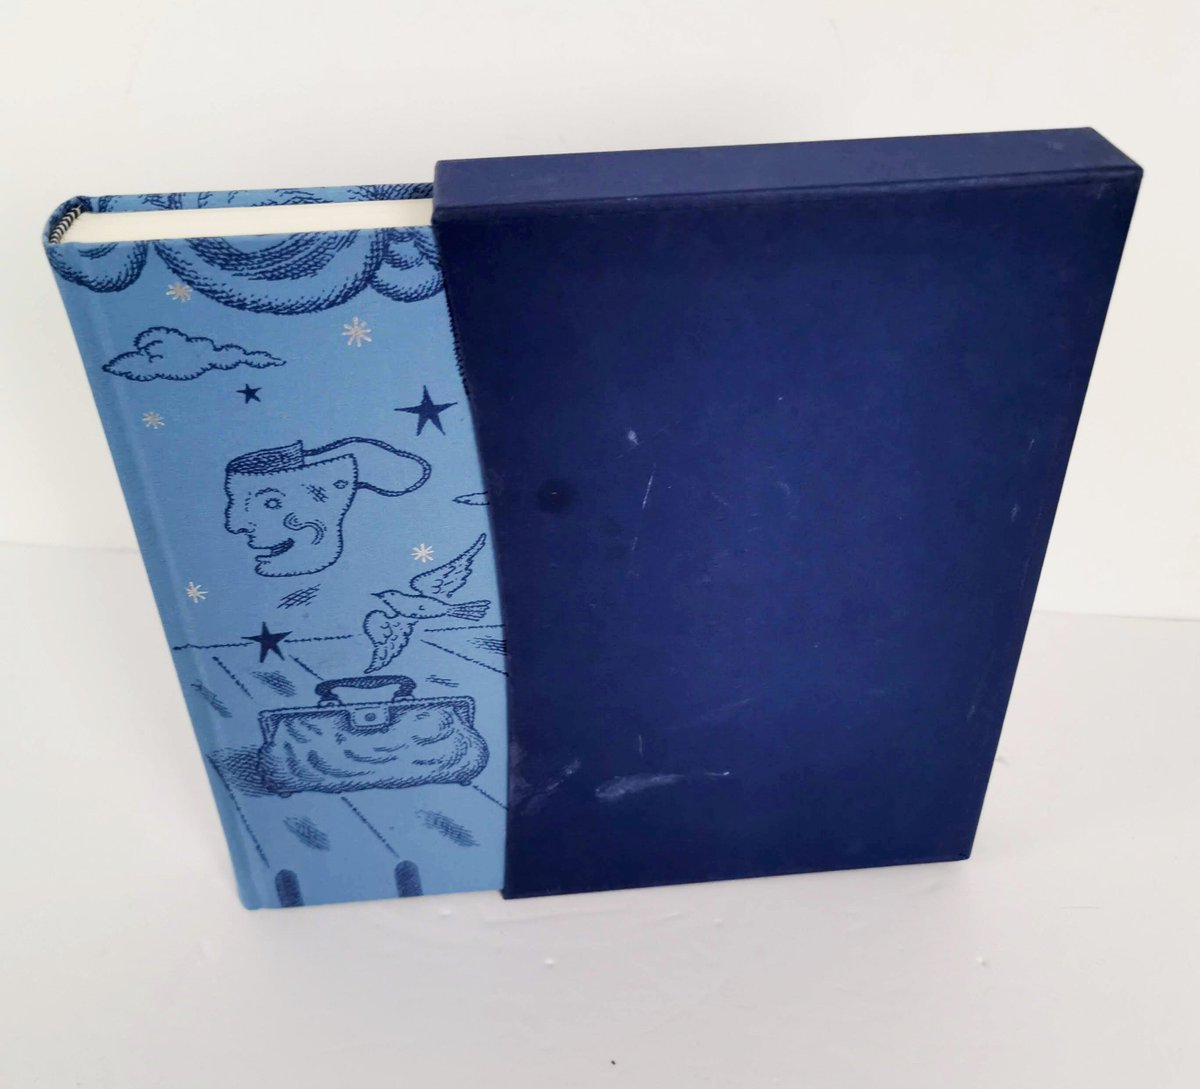 Wit of Oscar Wilde Folio Society 1997 HC Fine Binding with Slip Case Check It Out #withc #societywit #wildewit